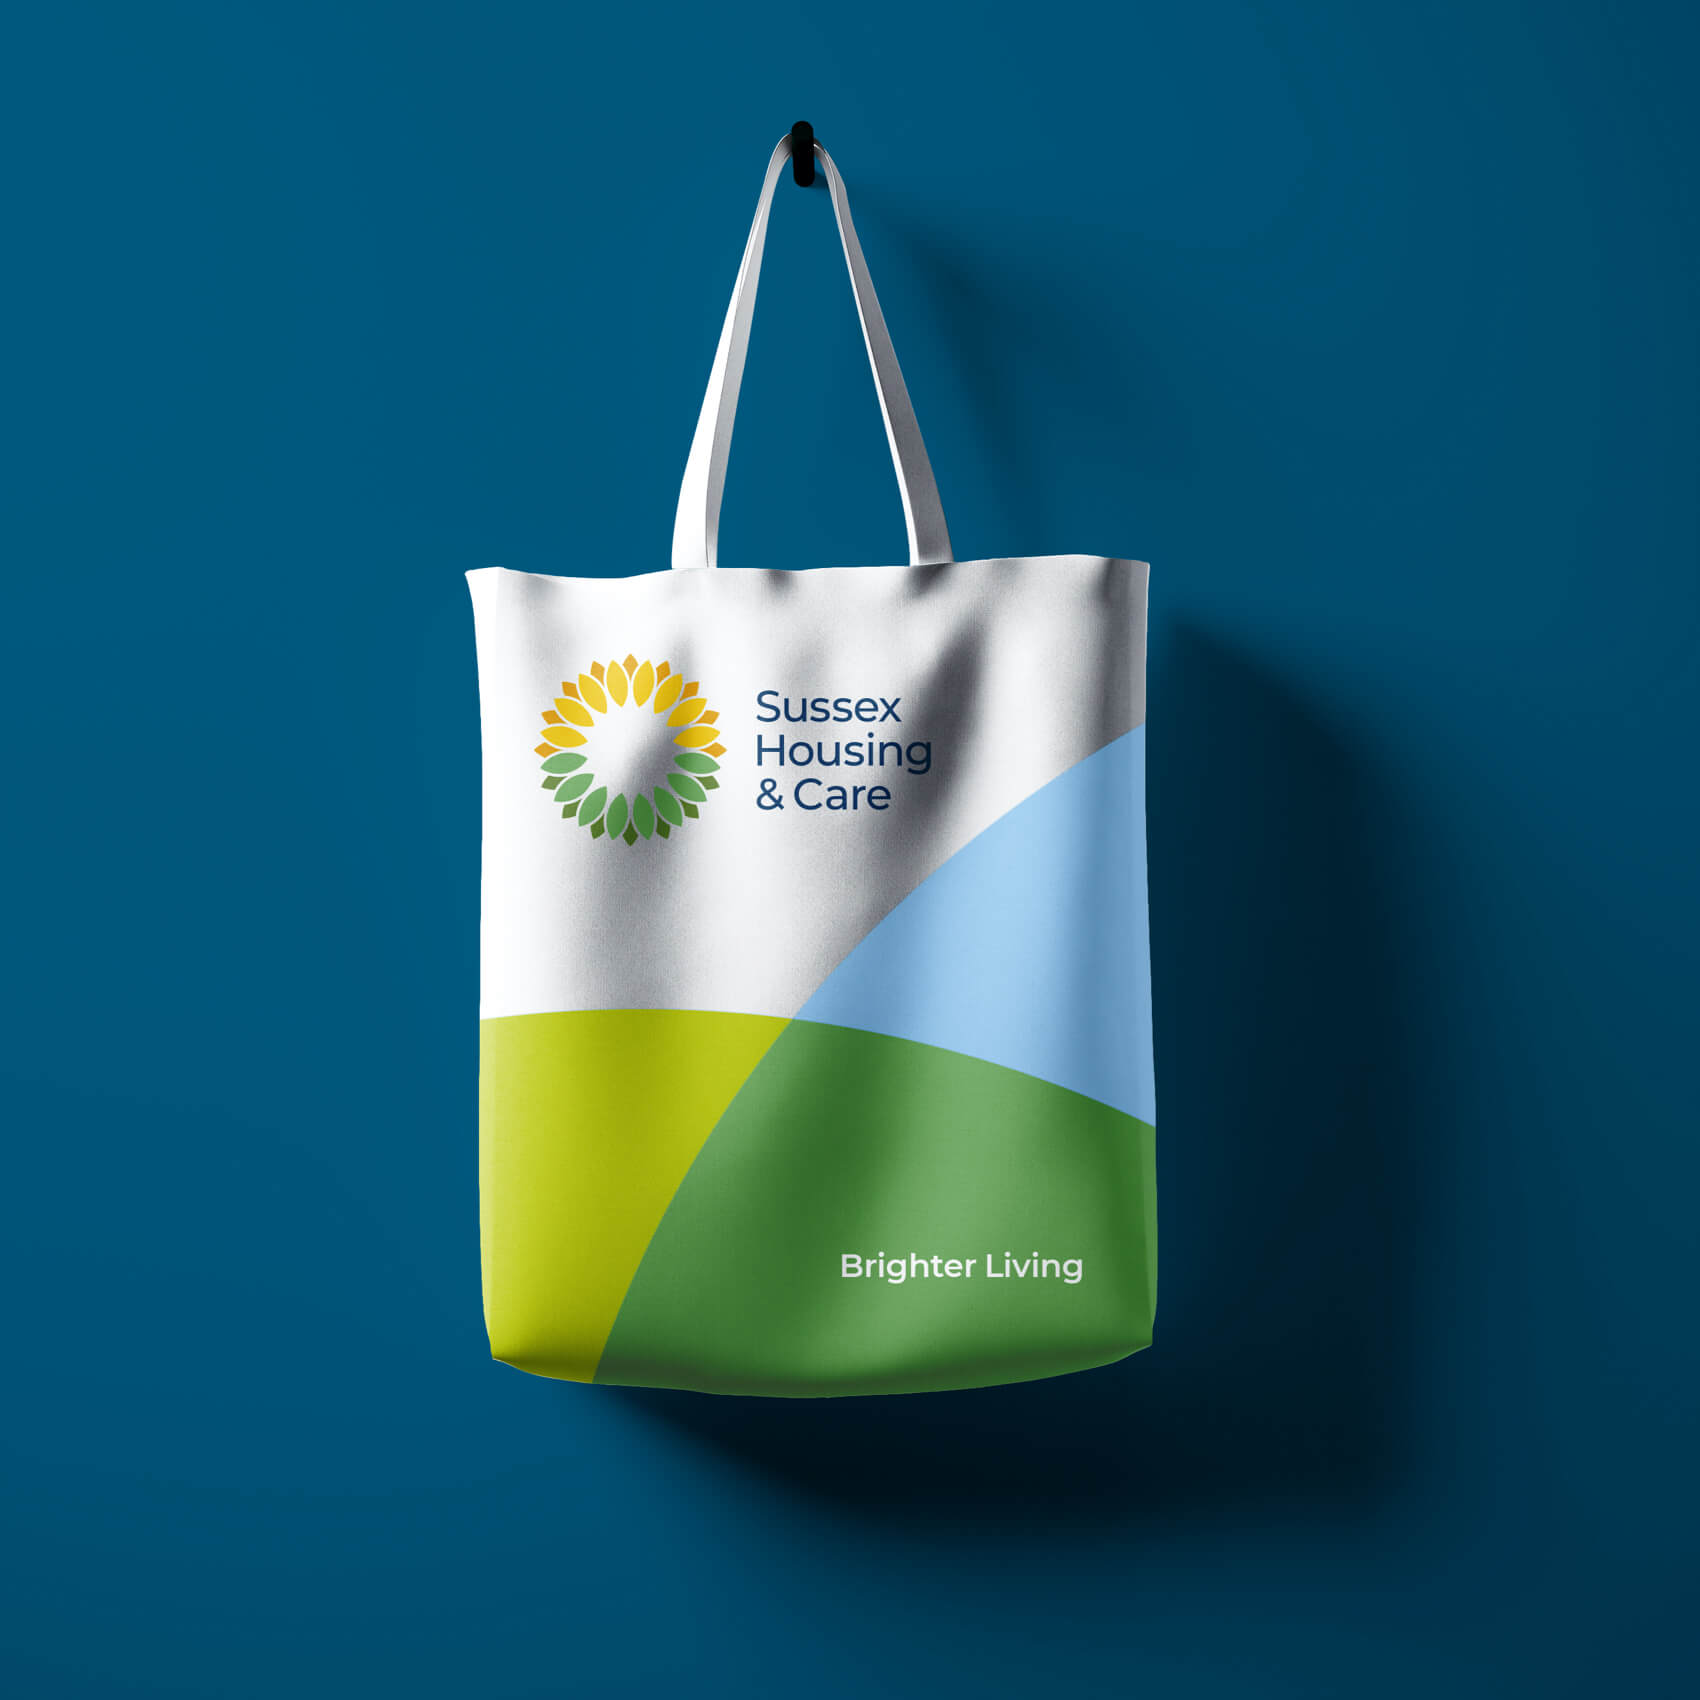 Sussex Housing & Care tote bag